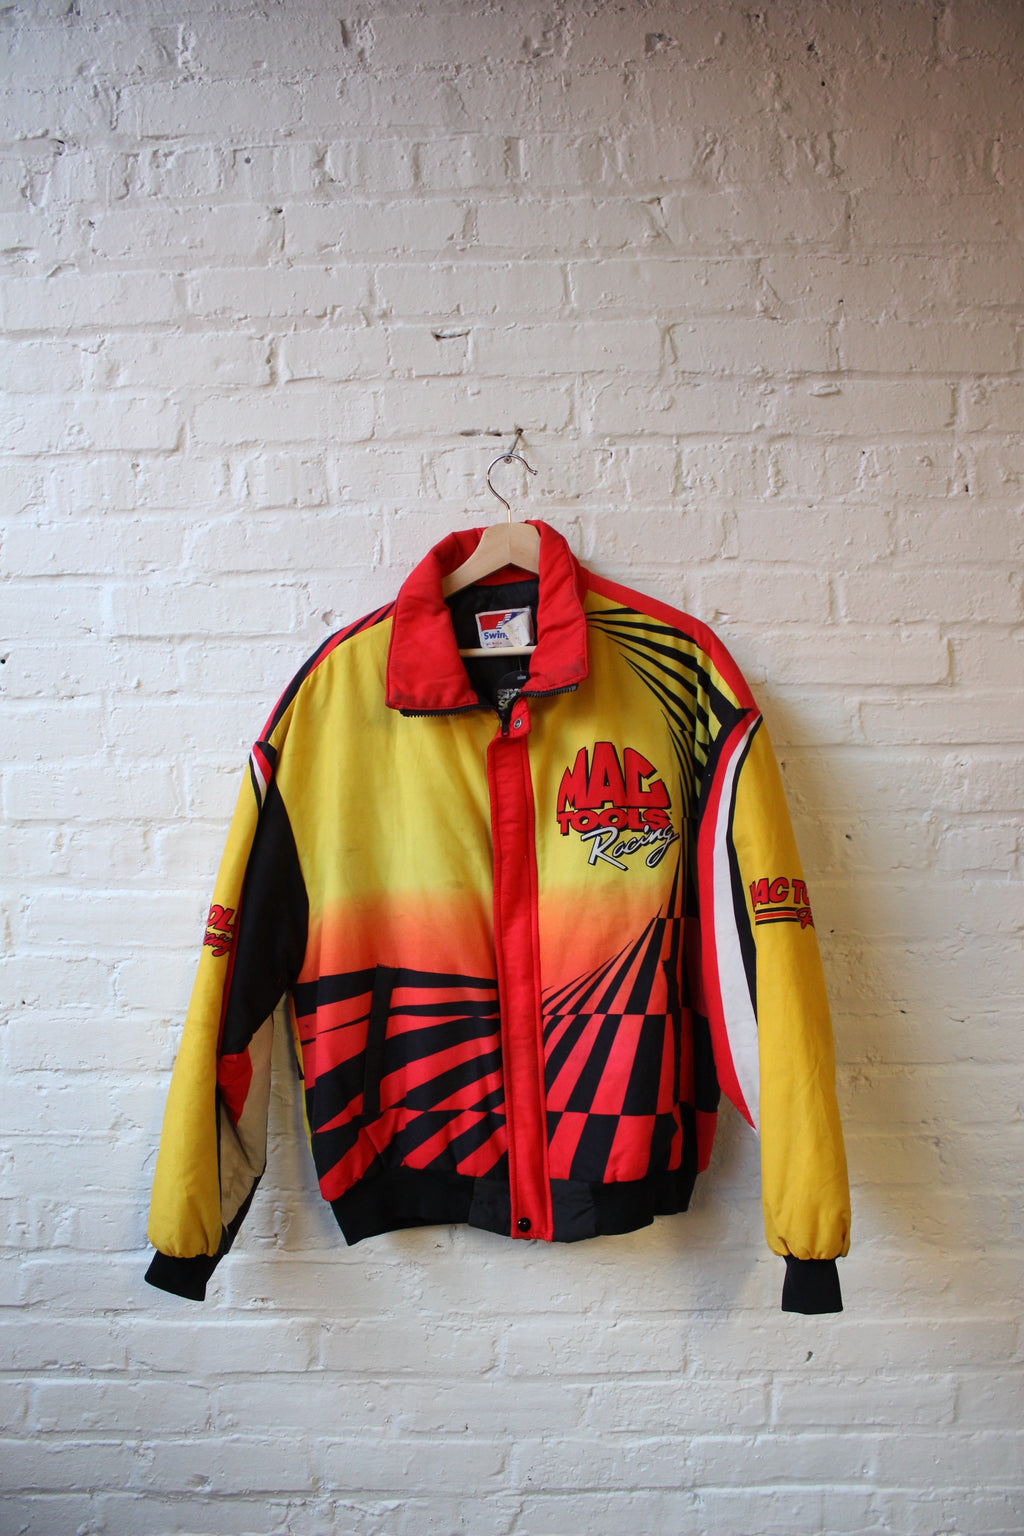 Swingster Mac Tools Racing Jacket